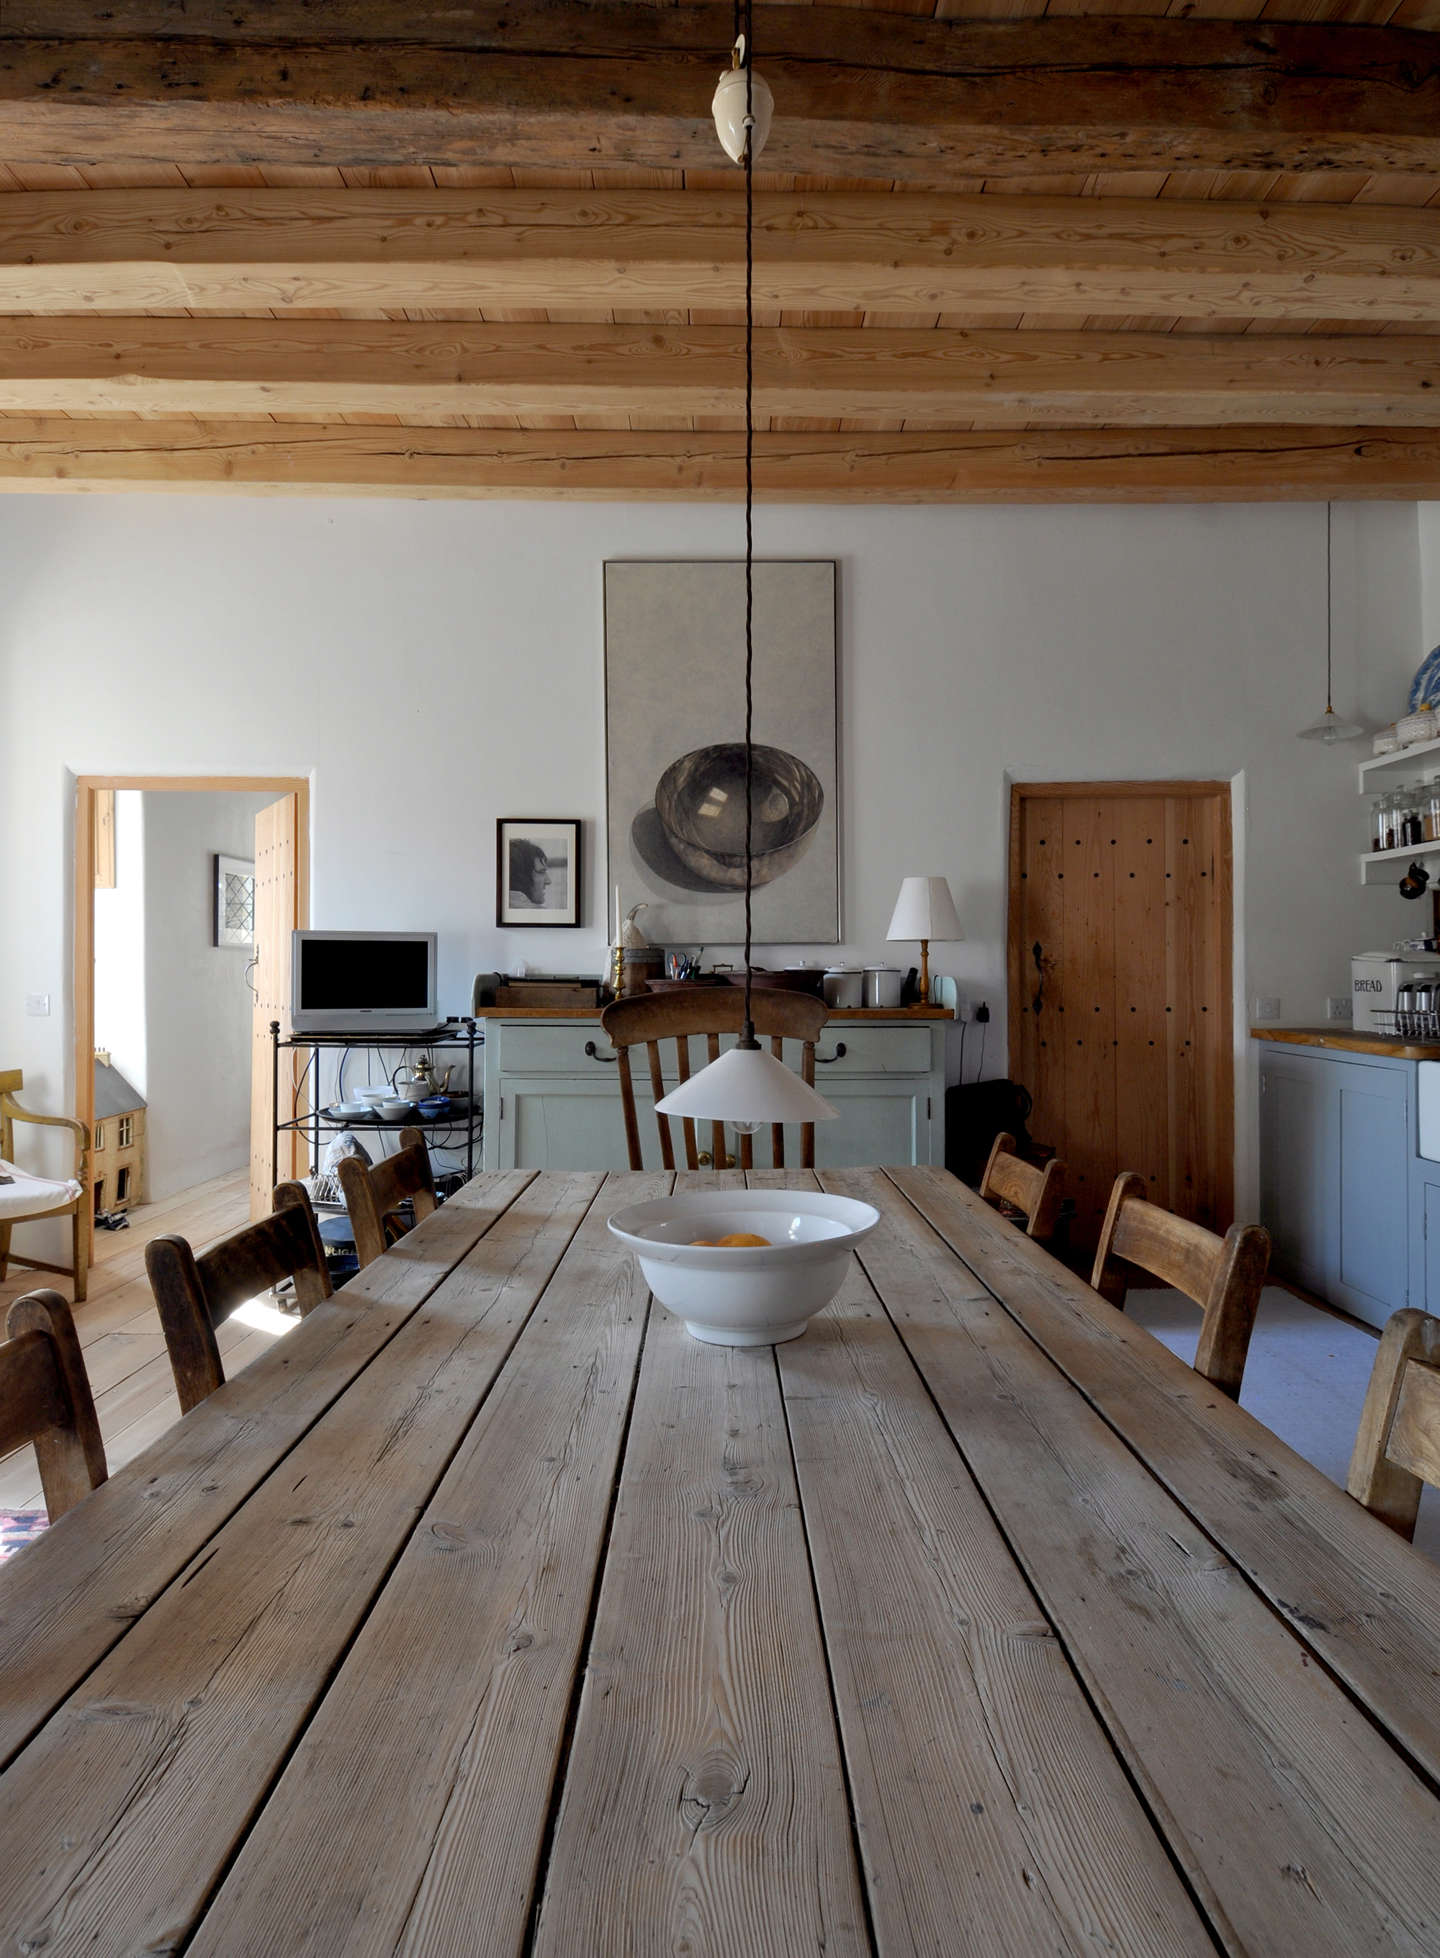 The antique dining table was originally used in the ironing room of a laundry facility.